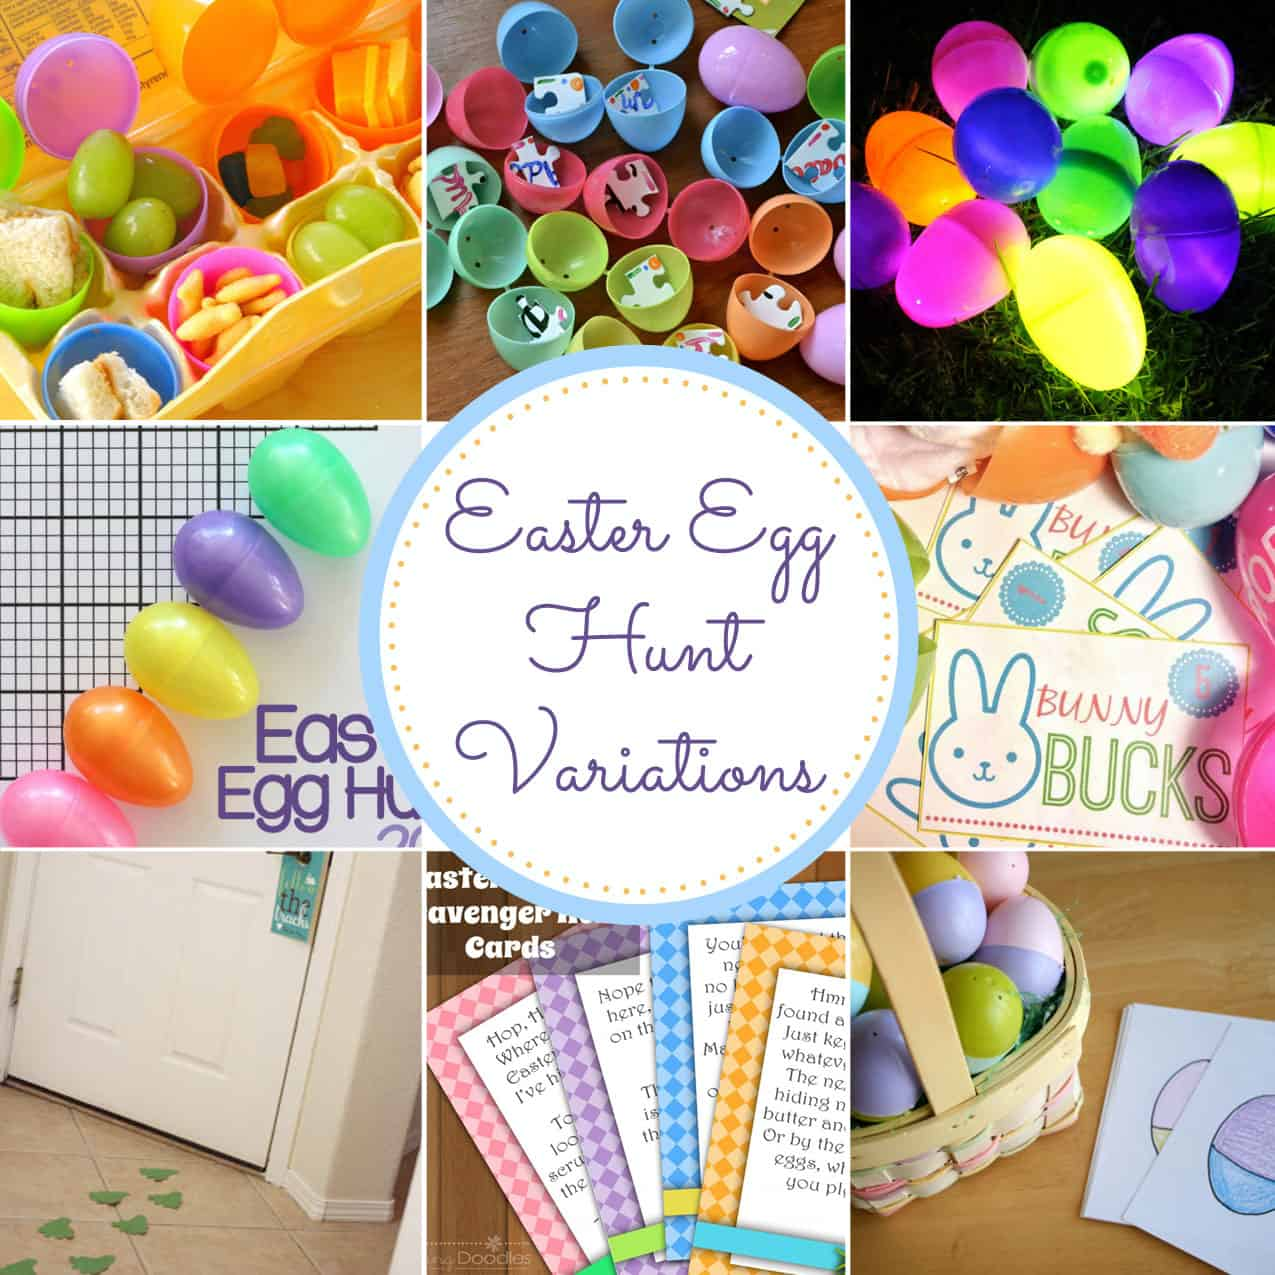 Superior 10+ Easter Egg Hunt Ideas That Are Perfect For Families In All Stages! From